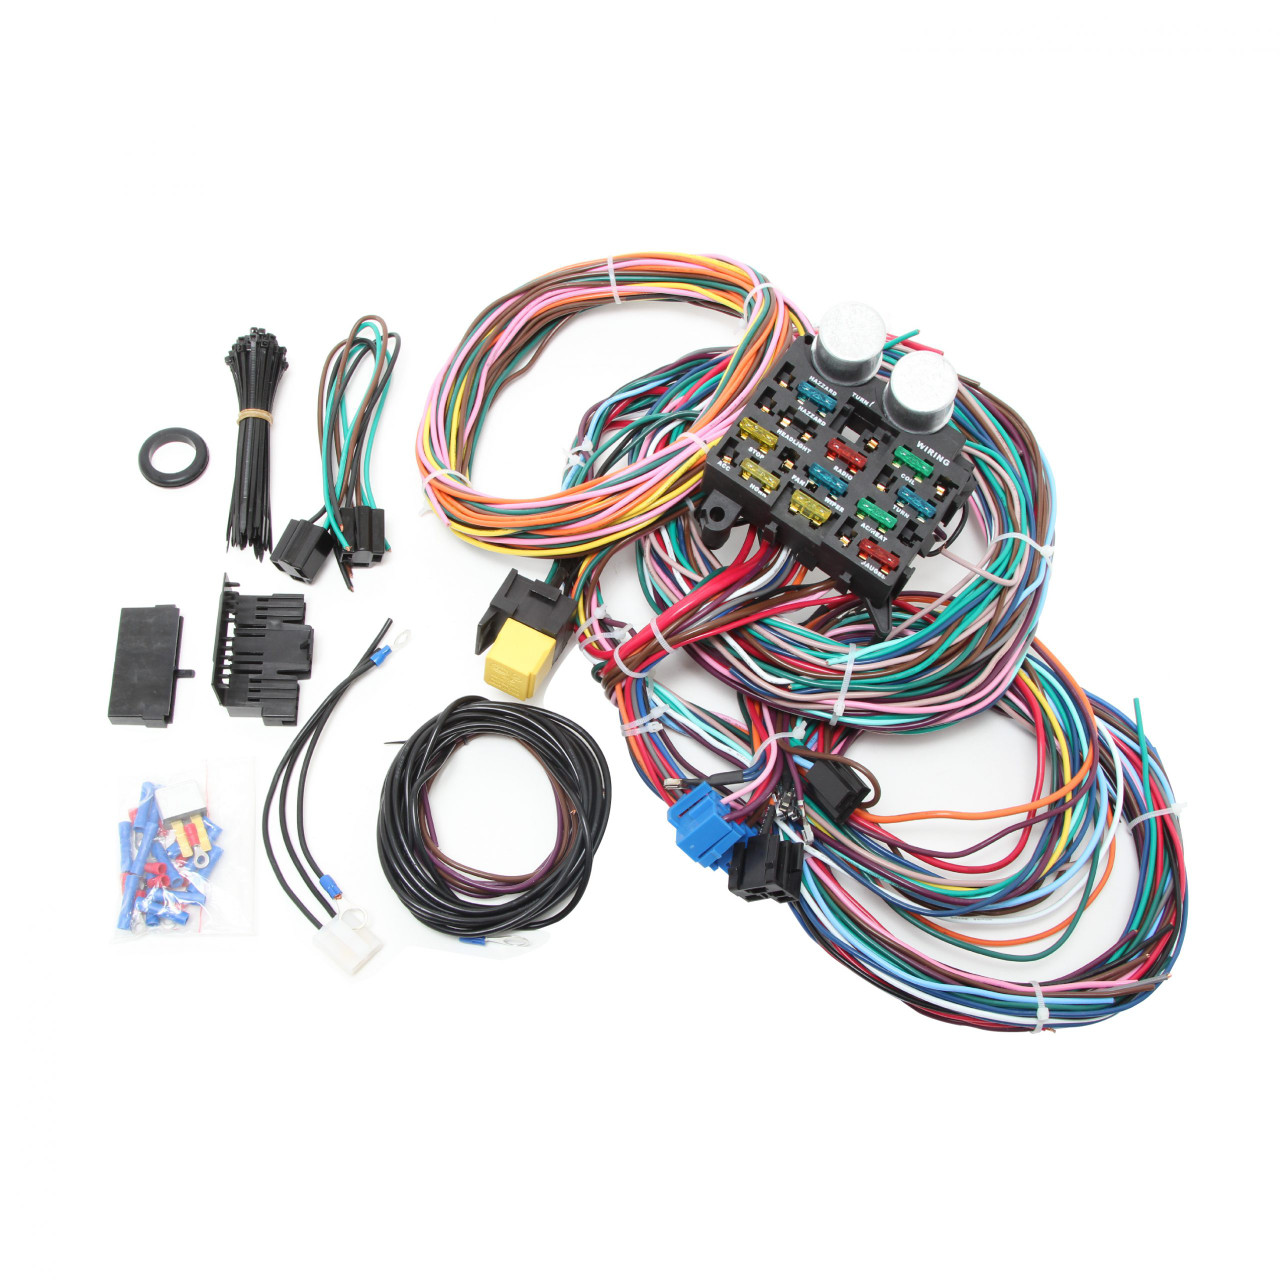 R1002X, UNIVERSAL 12 CIRCUIT WIRE HARNESS KIT